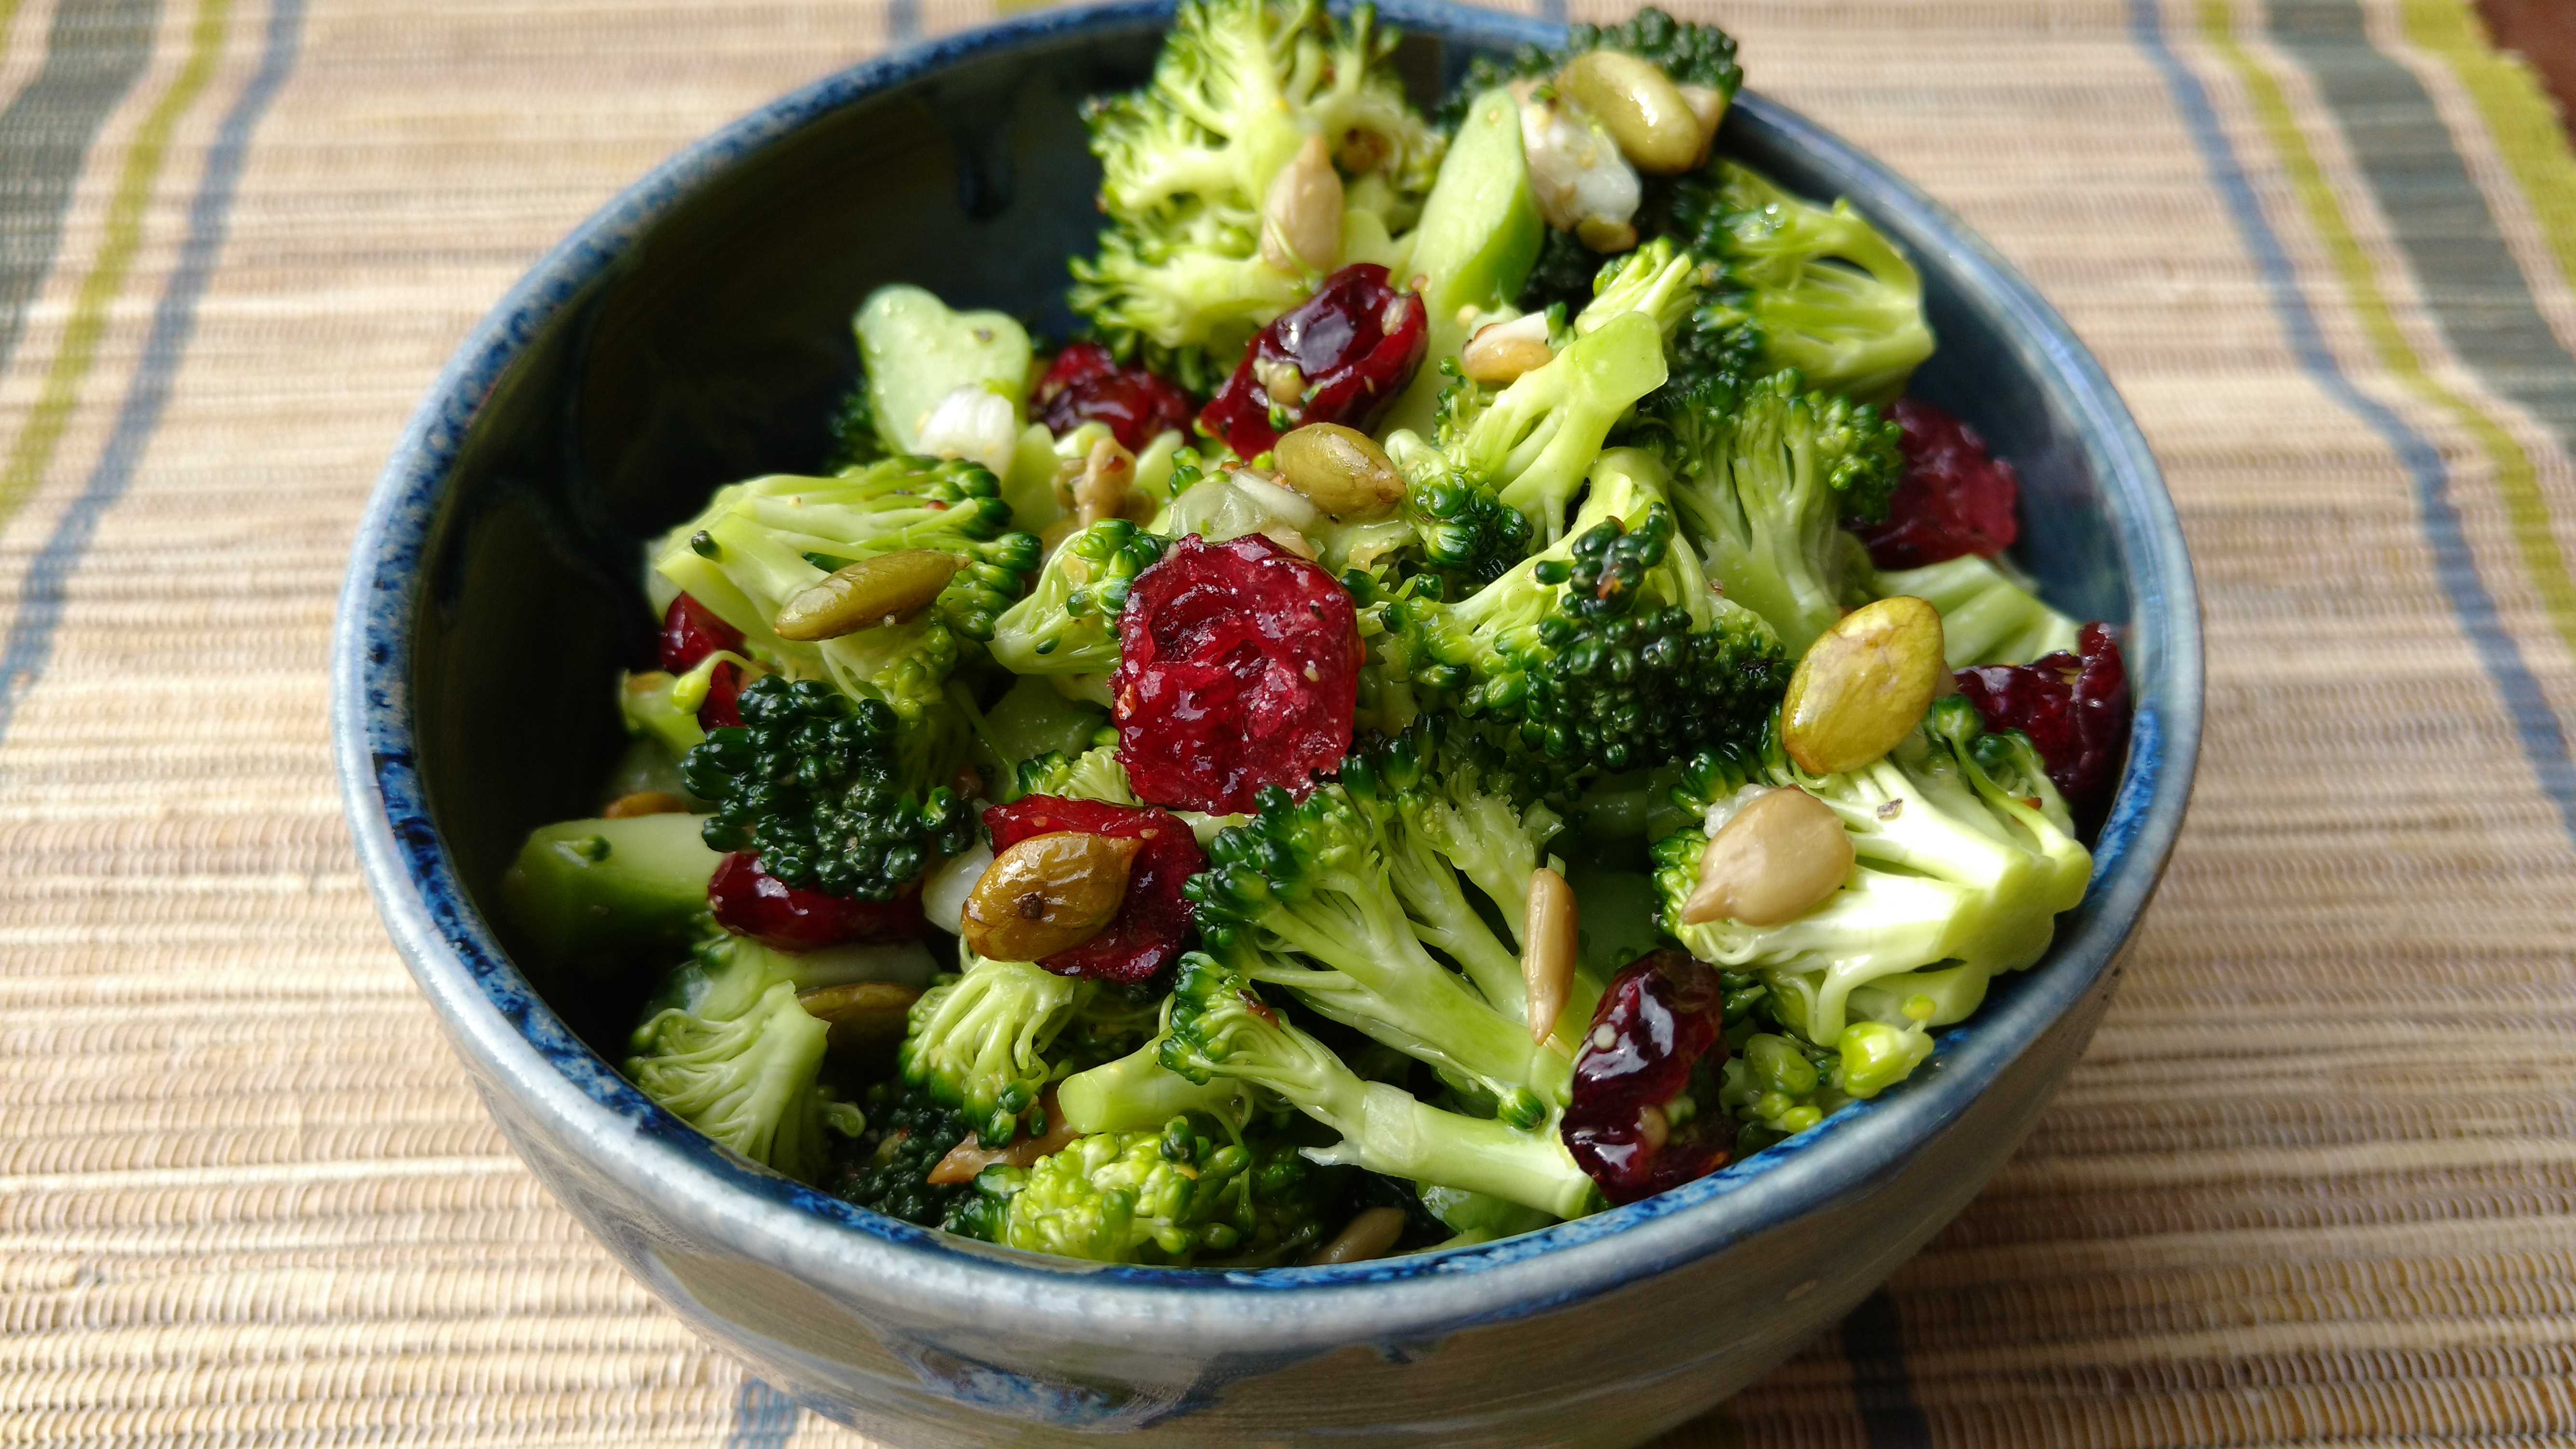 Cranberry Broccoli Floret Salad Without Mayo Move Daily